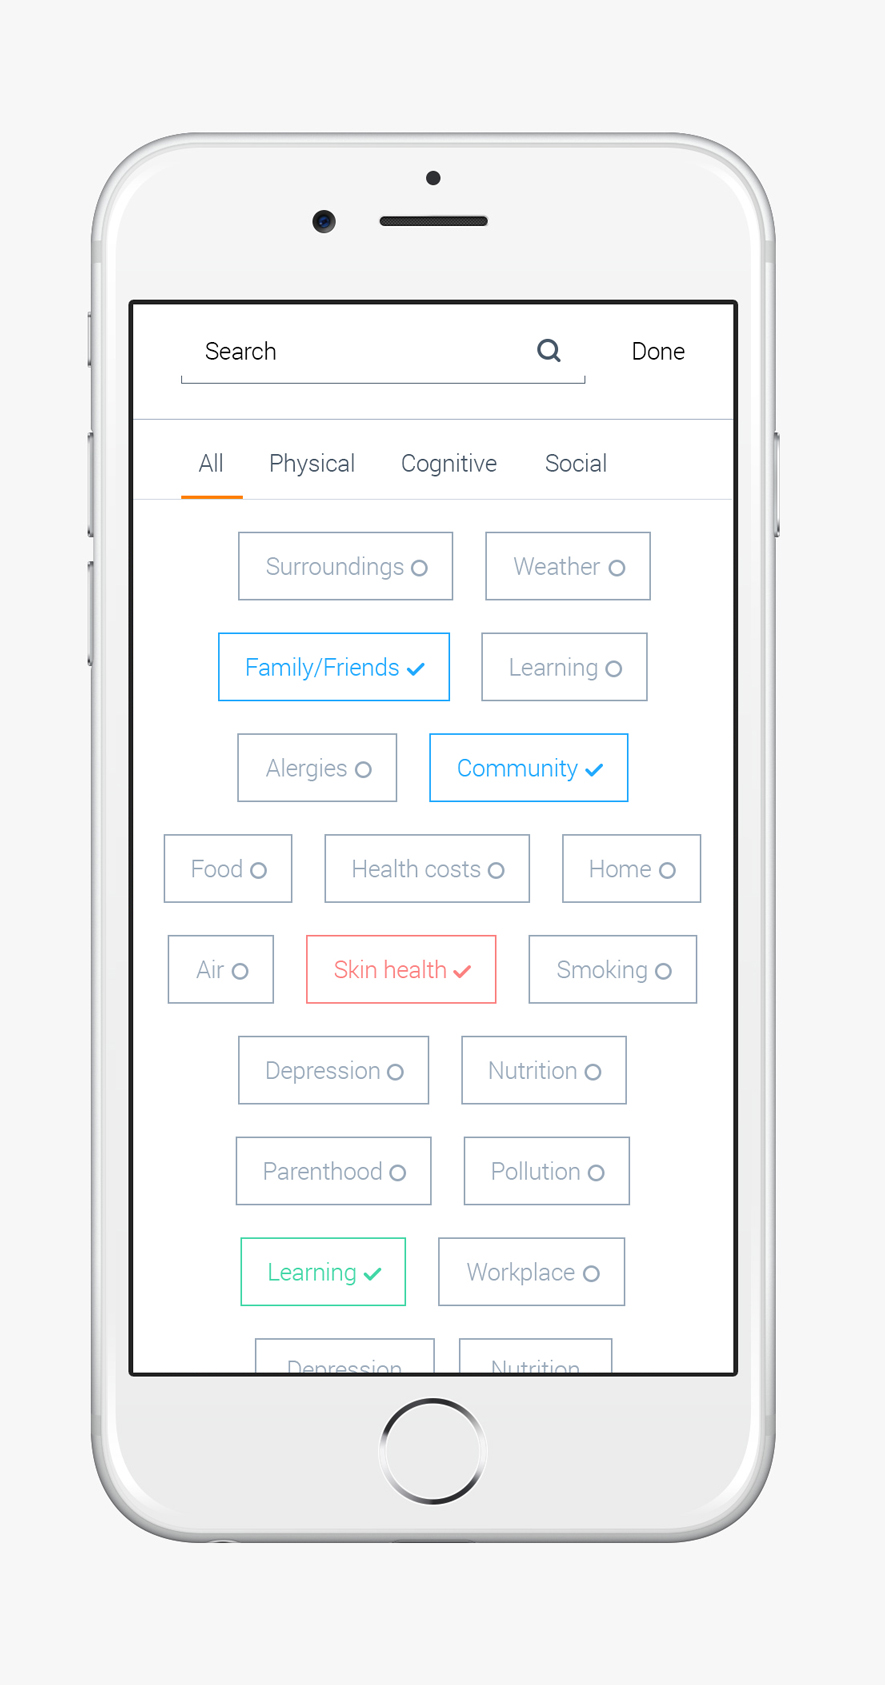 Tonic-interaction-app-design-furthermore.jpg